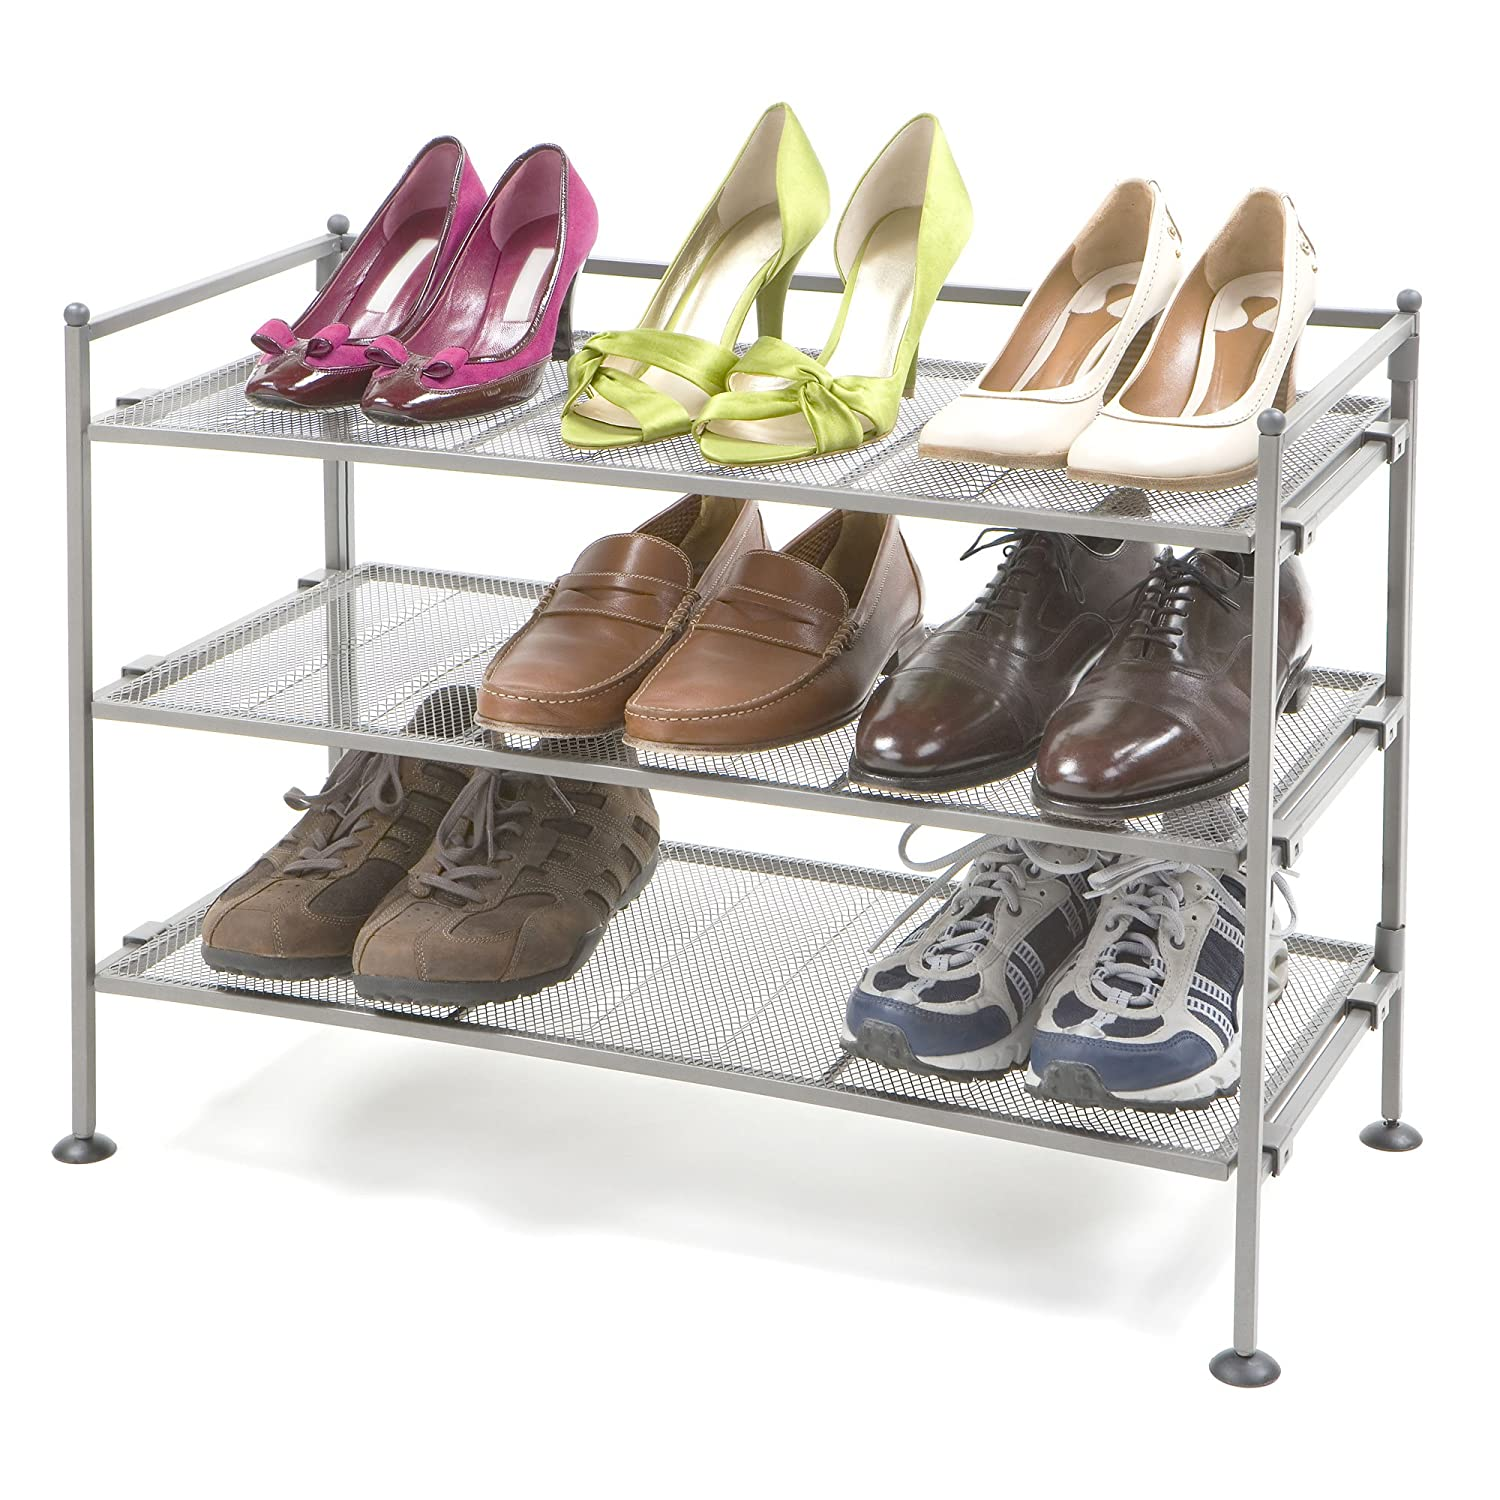 $33.99 (was $53) Seville Classics 3-Tier Iron Mesh Utility Shoe Rack, Satin Pewter